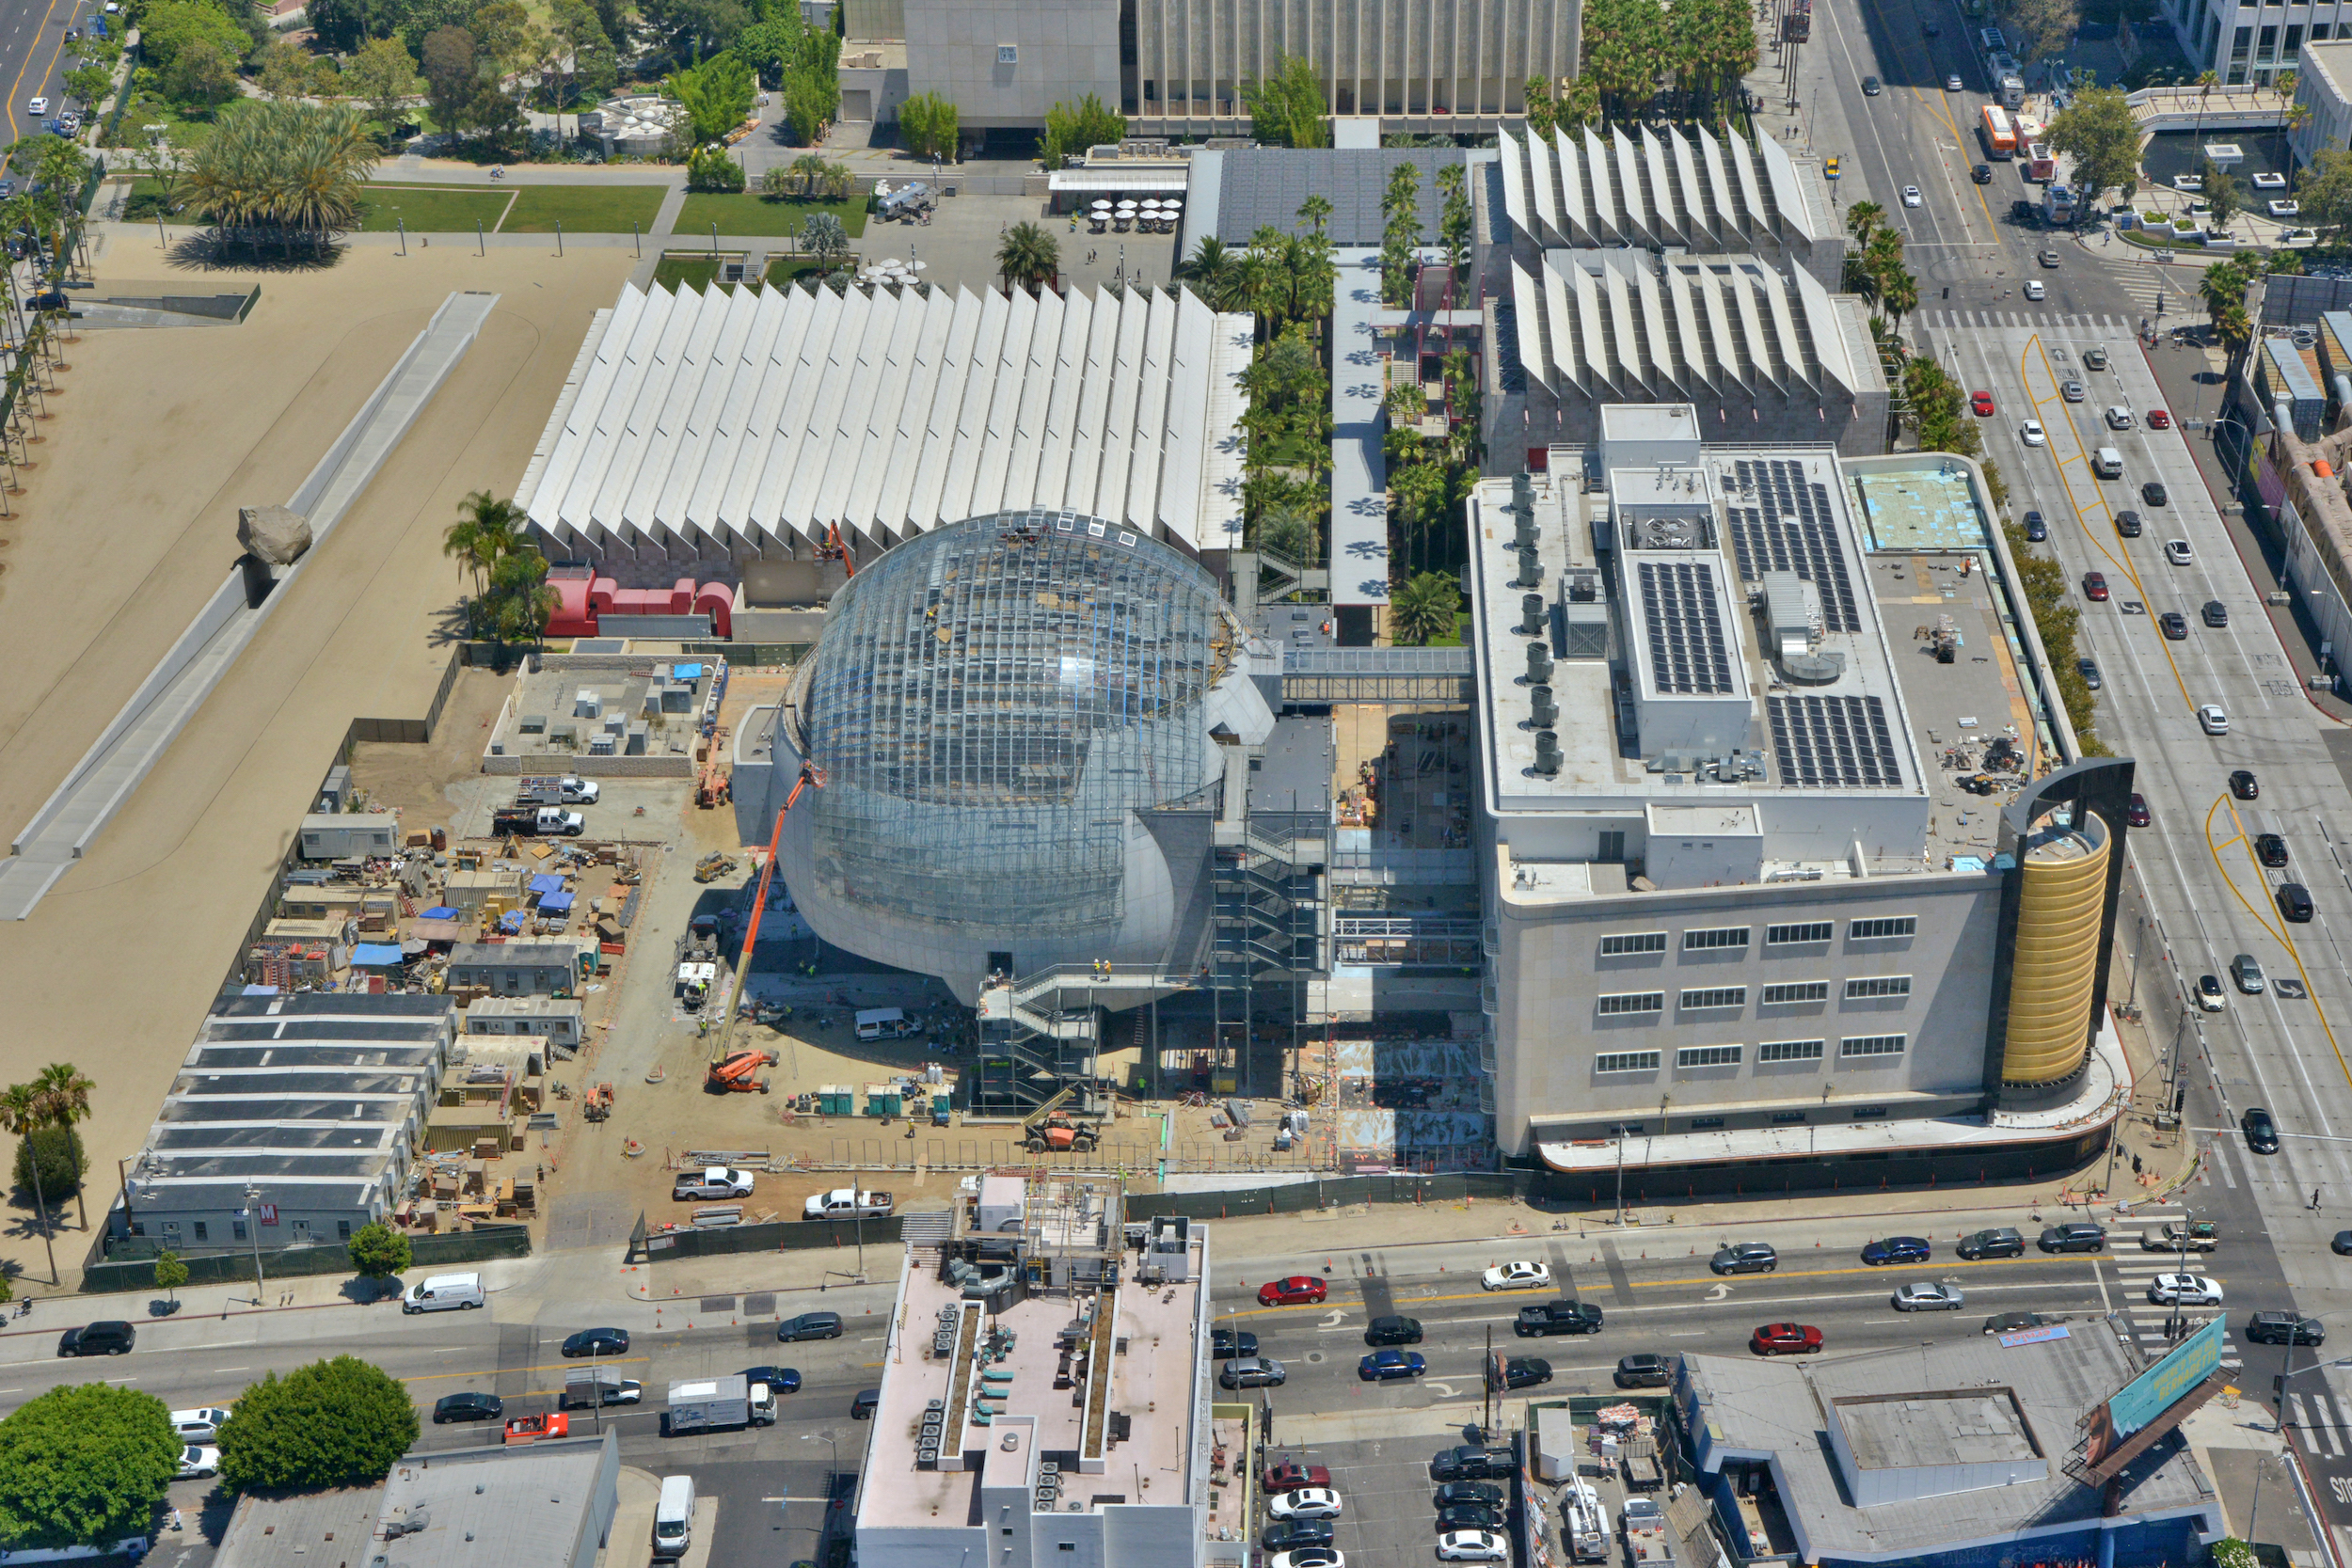 The Academy Museum of Motion Pictures is due to be completed in December, 2020